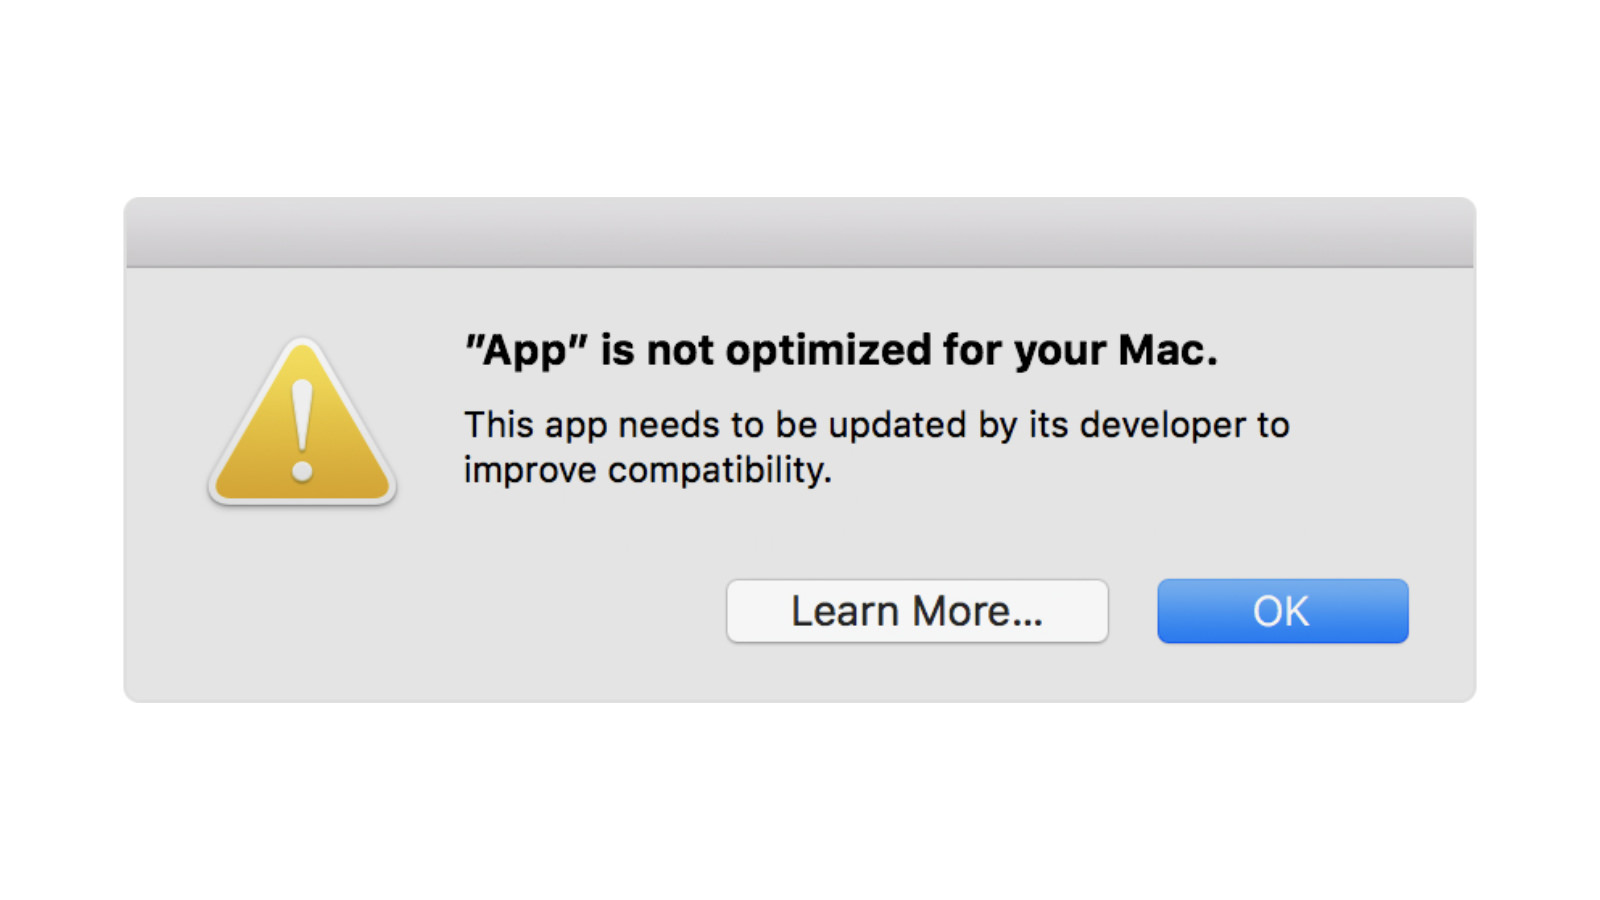 App is not customized for your mac